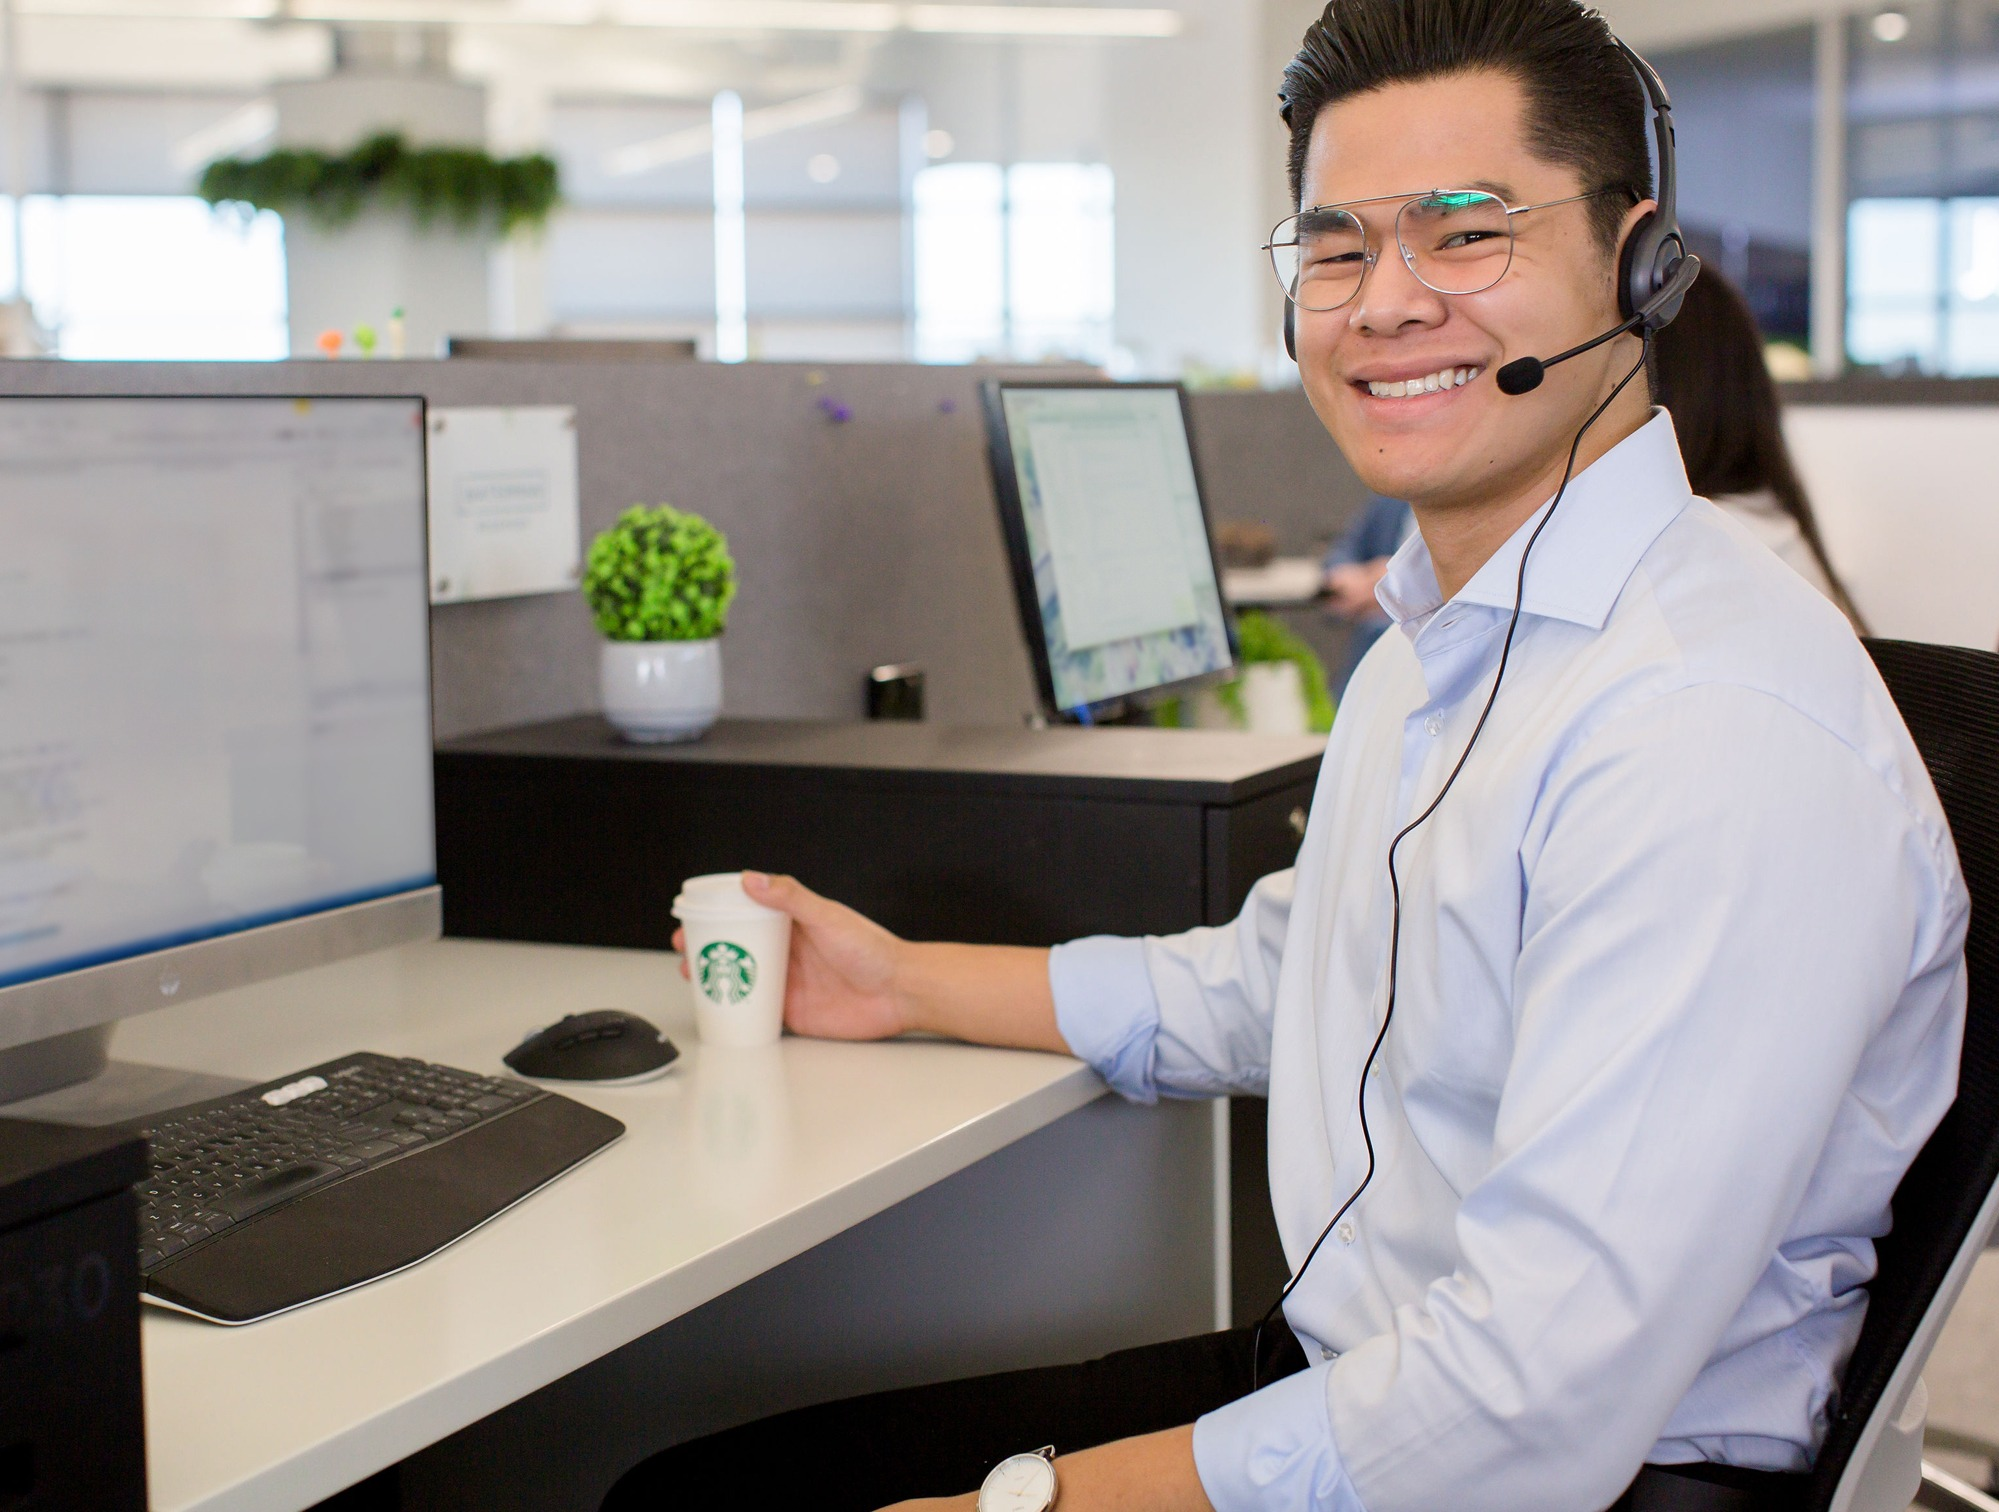 Why Use a Virtual Staff for Customer Service?